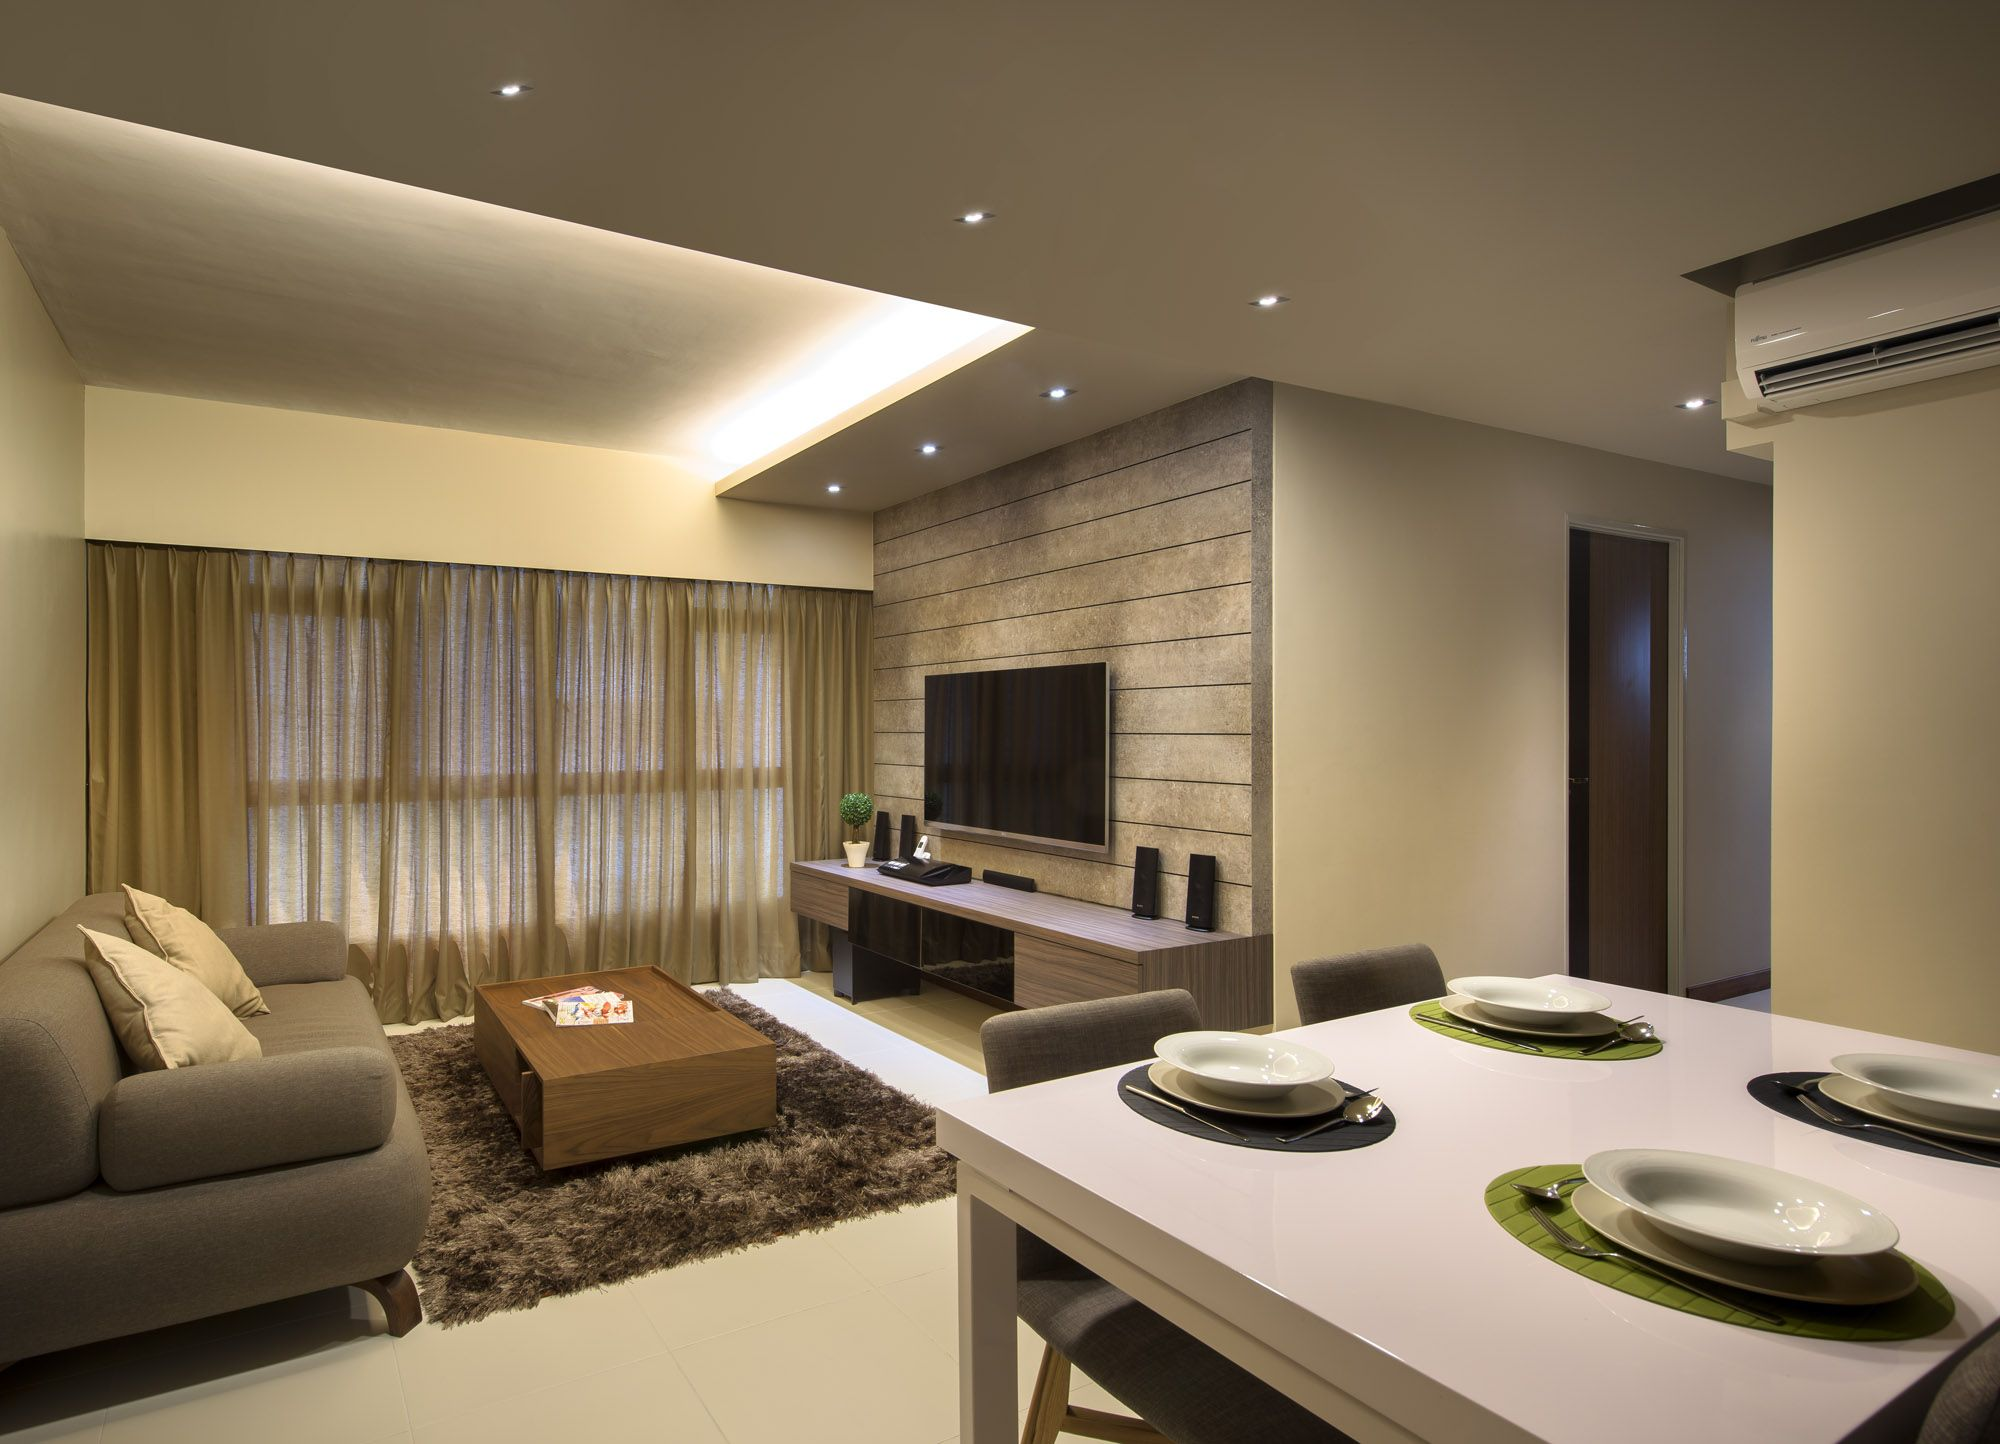 Rezt Relax Interior Design And Renovation Singapore Get Another Insight At